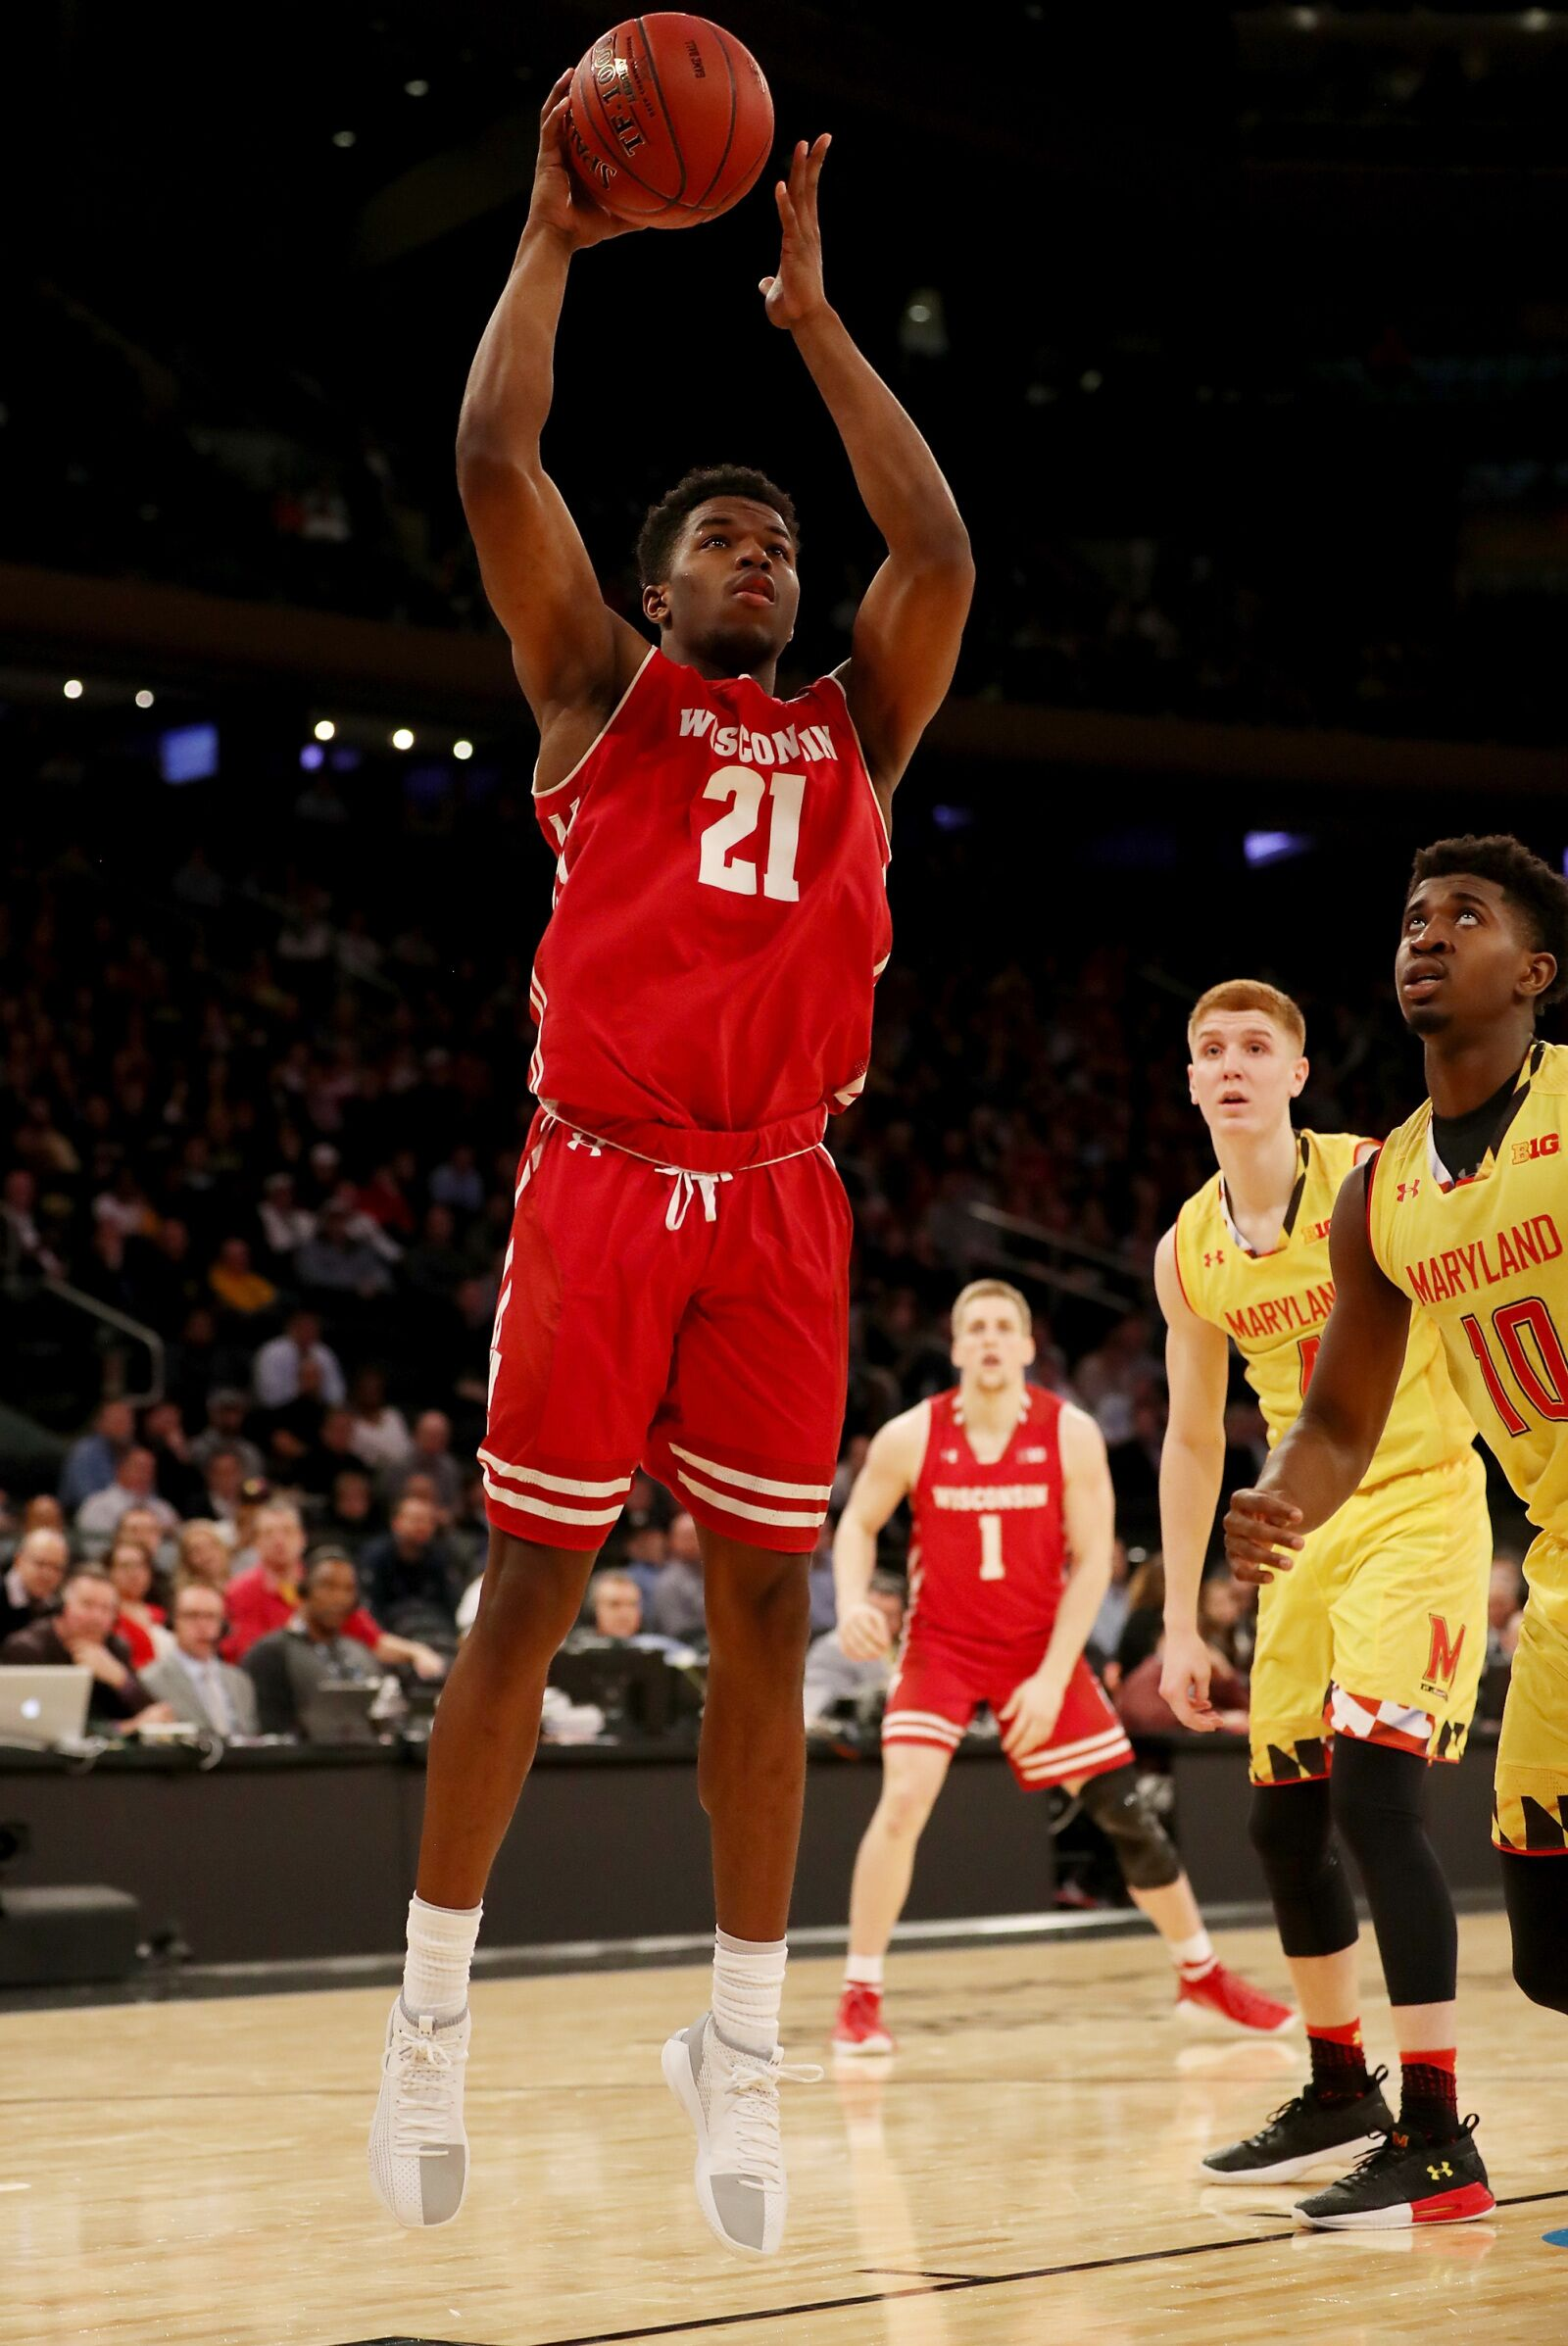 Wisconsin Badgers: Khalil Iverson must continue to play well